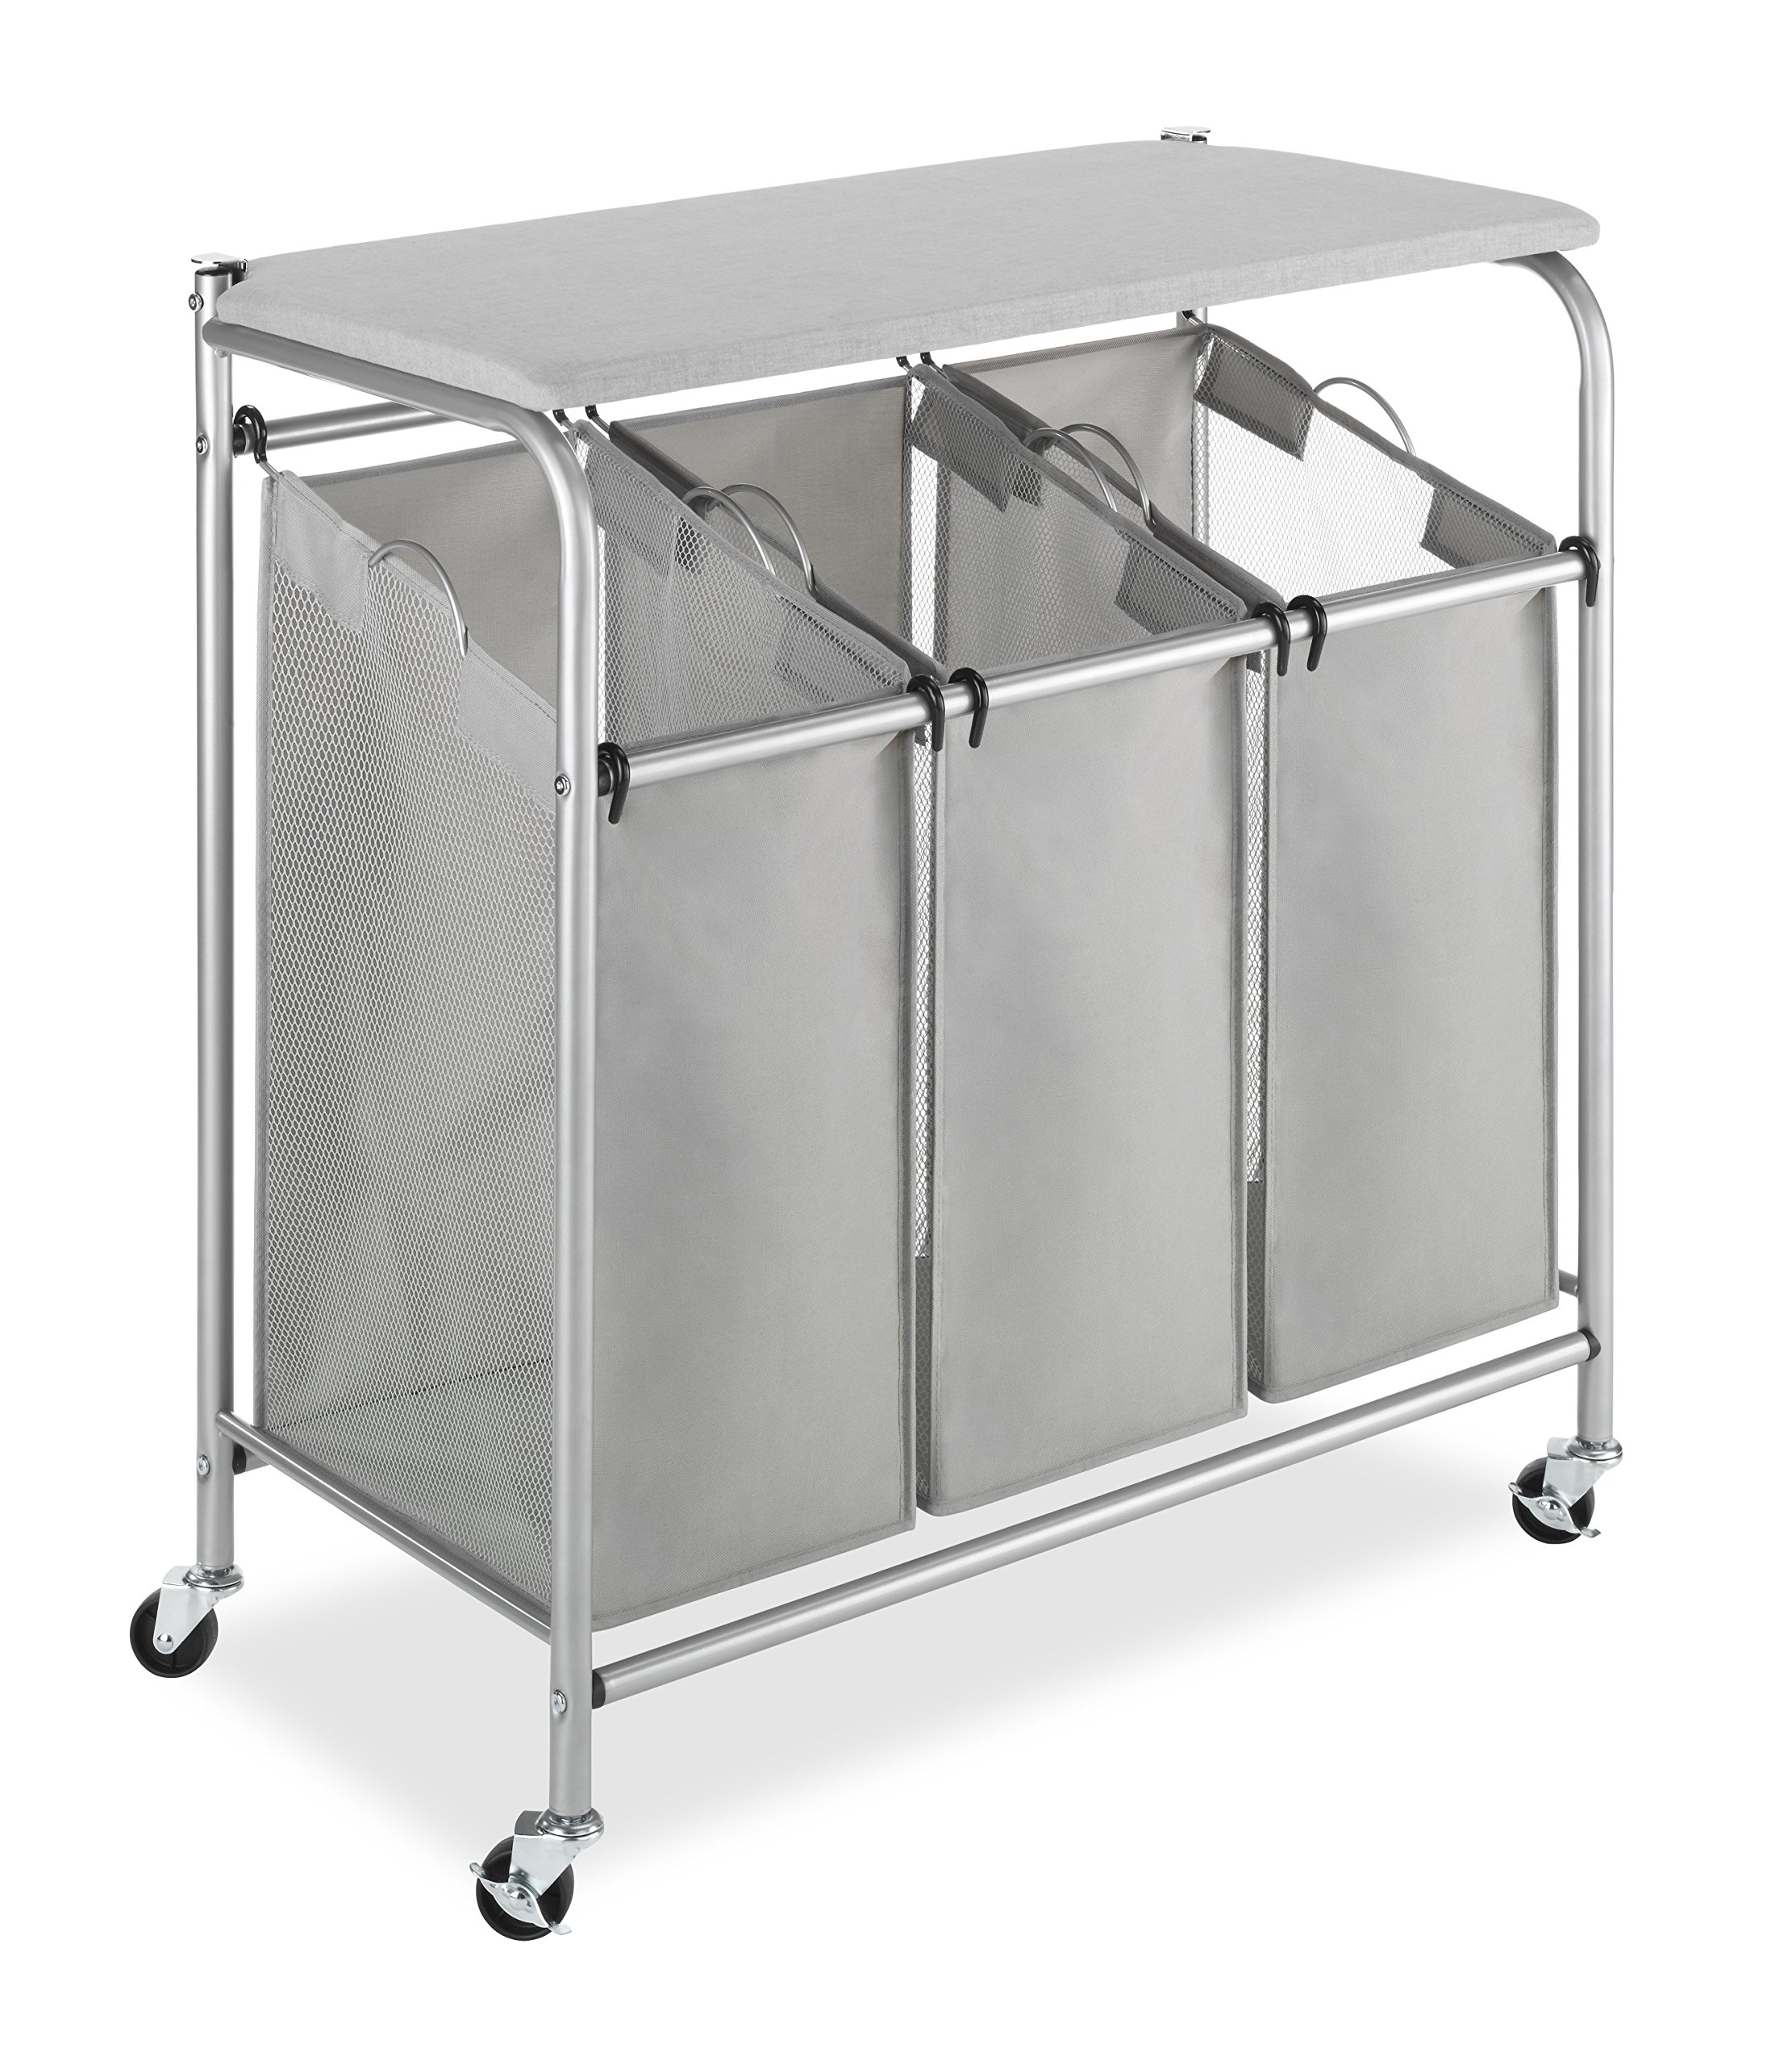 Whitmor 3 Section Rolling Laundry Sorter with Folding Station - Ironing Board by Whitmor